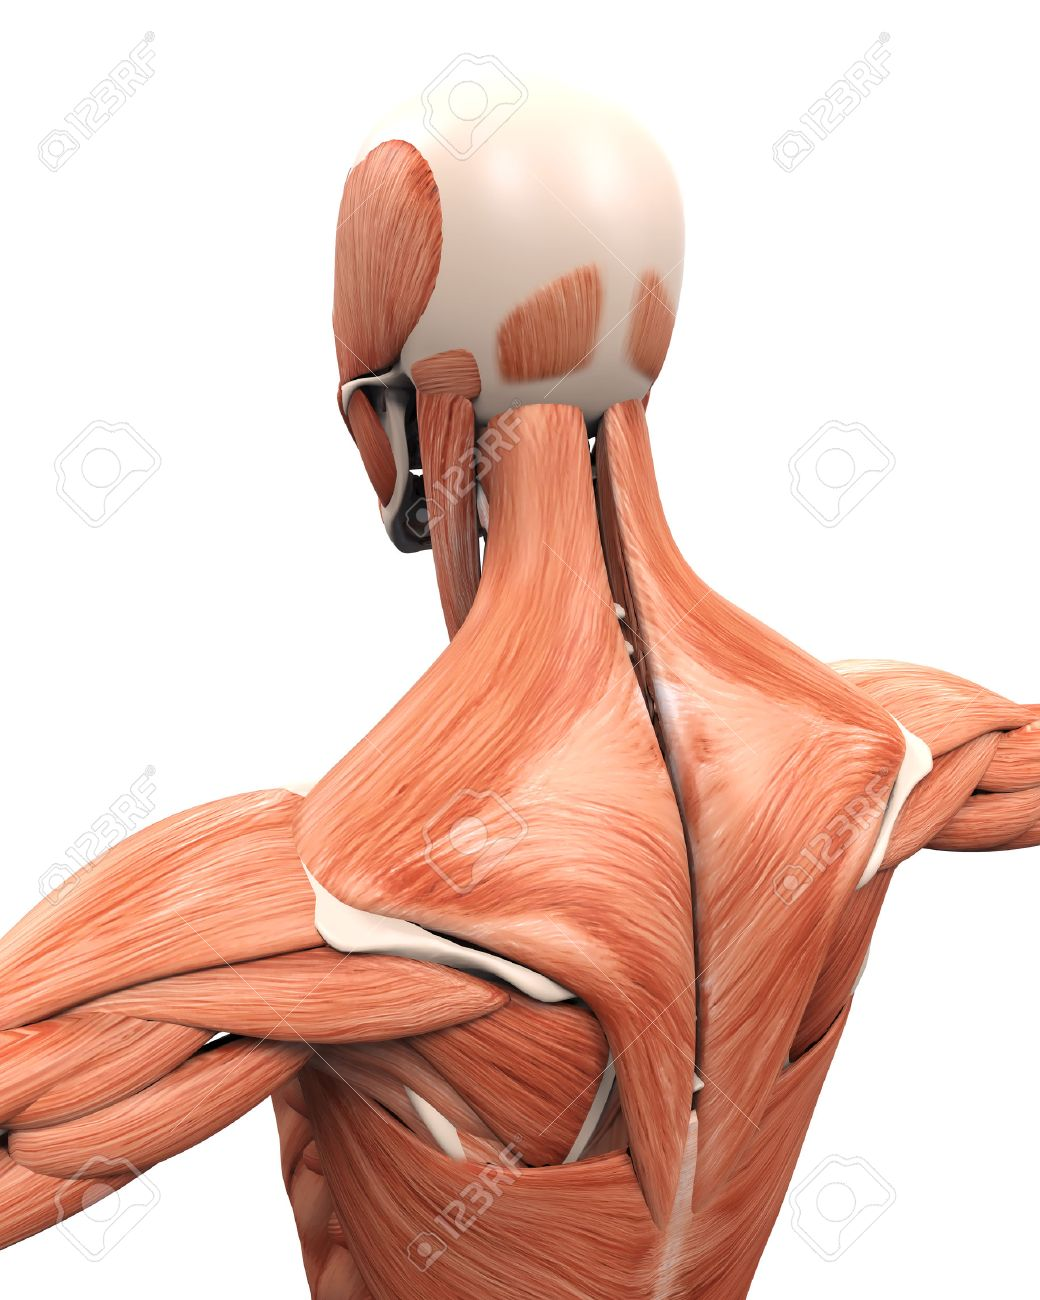 Muscular Anatomy Of The Back Stock Photo, Picture And Royalty Free ...